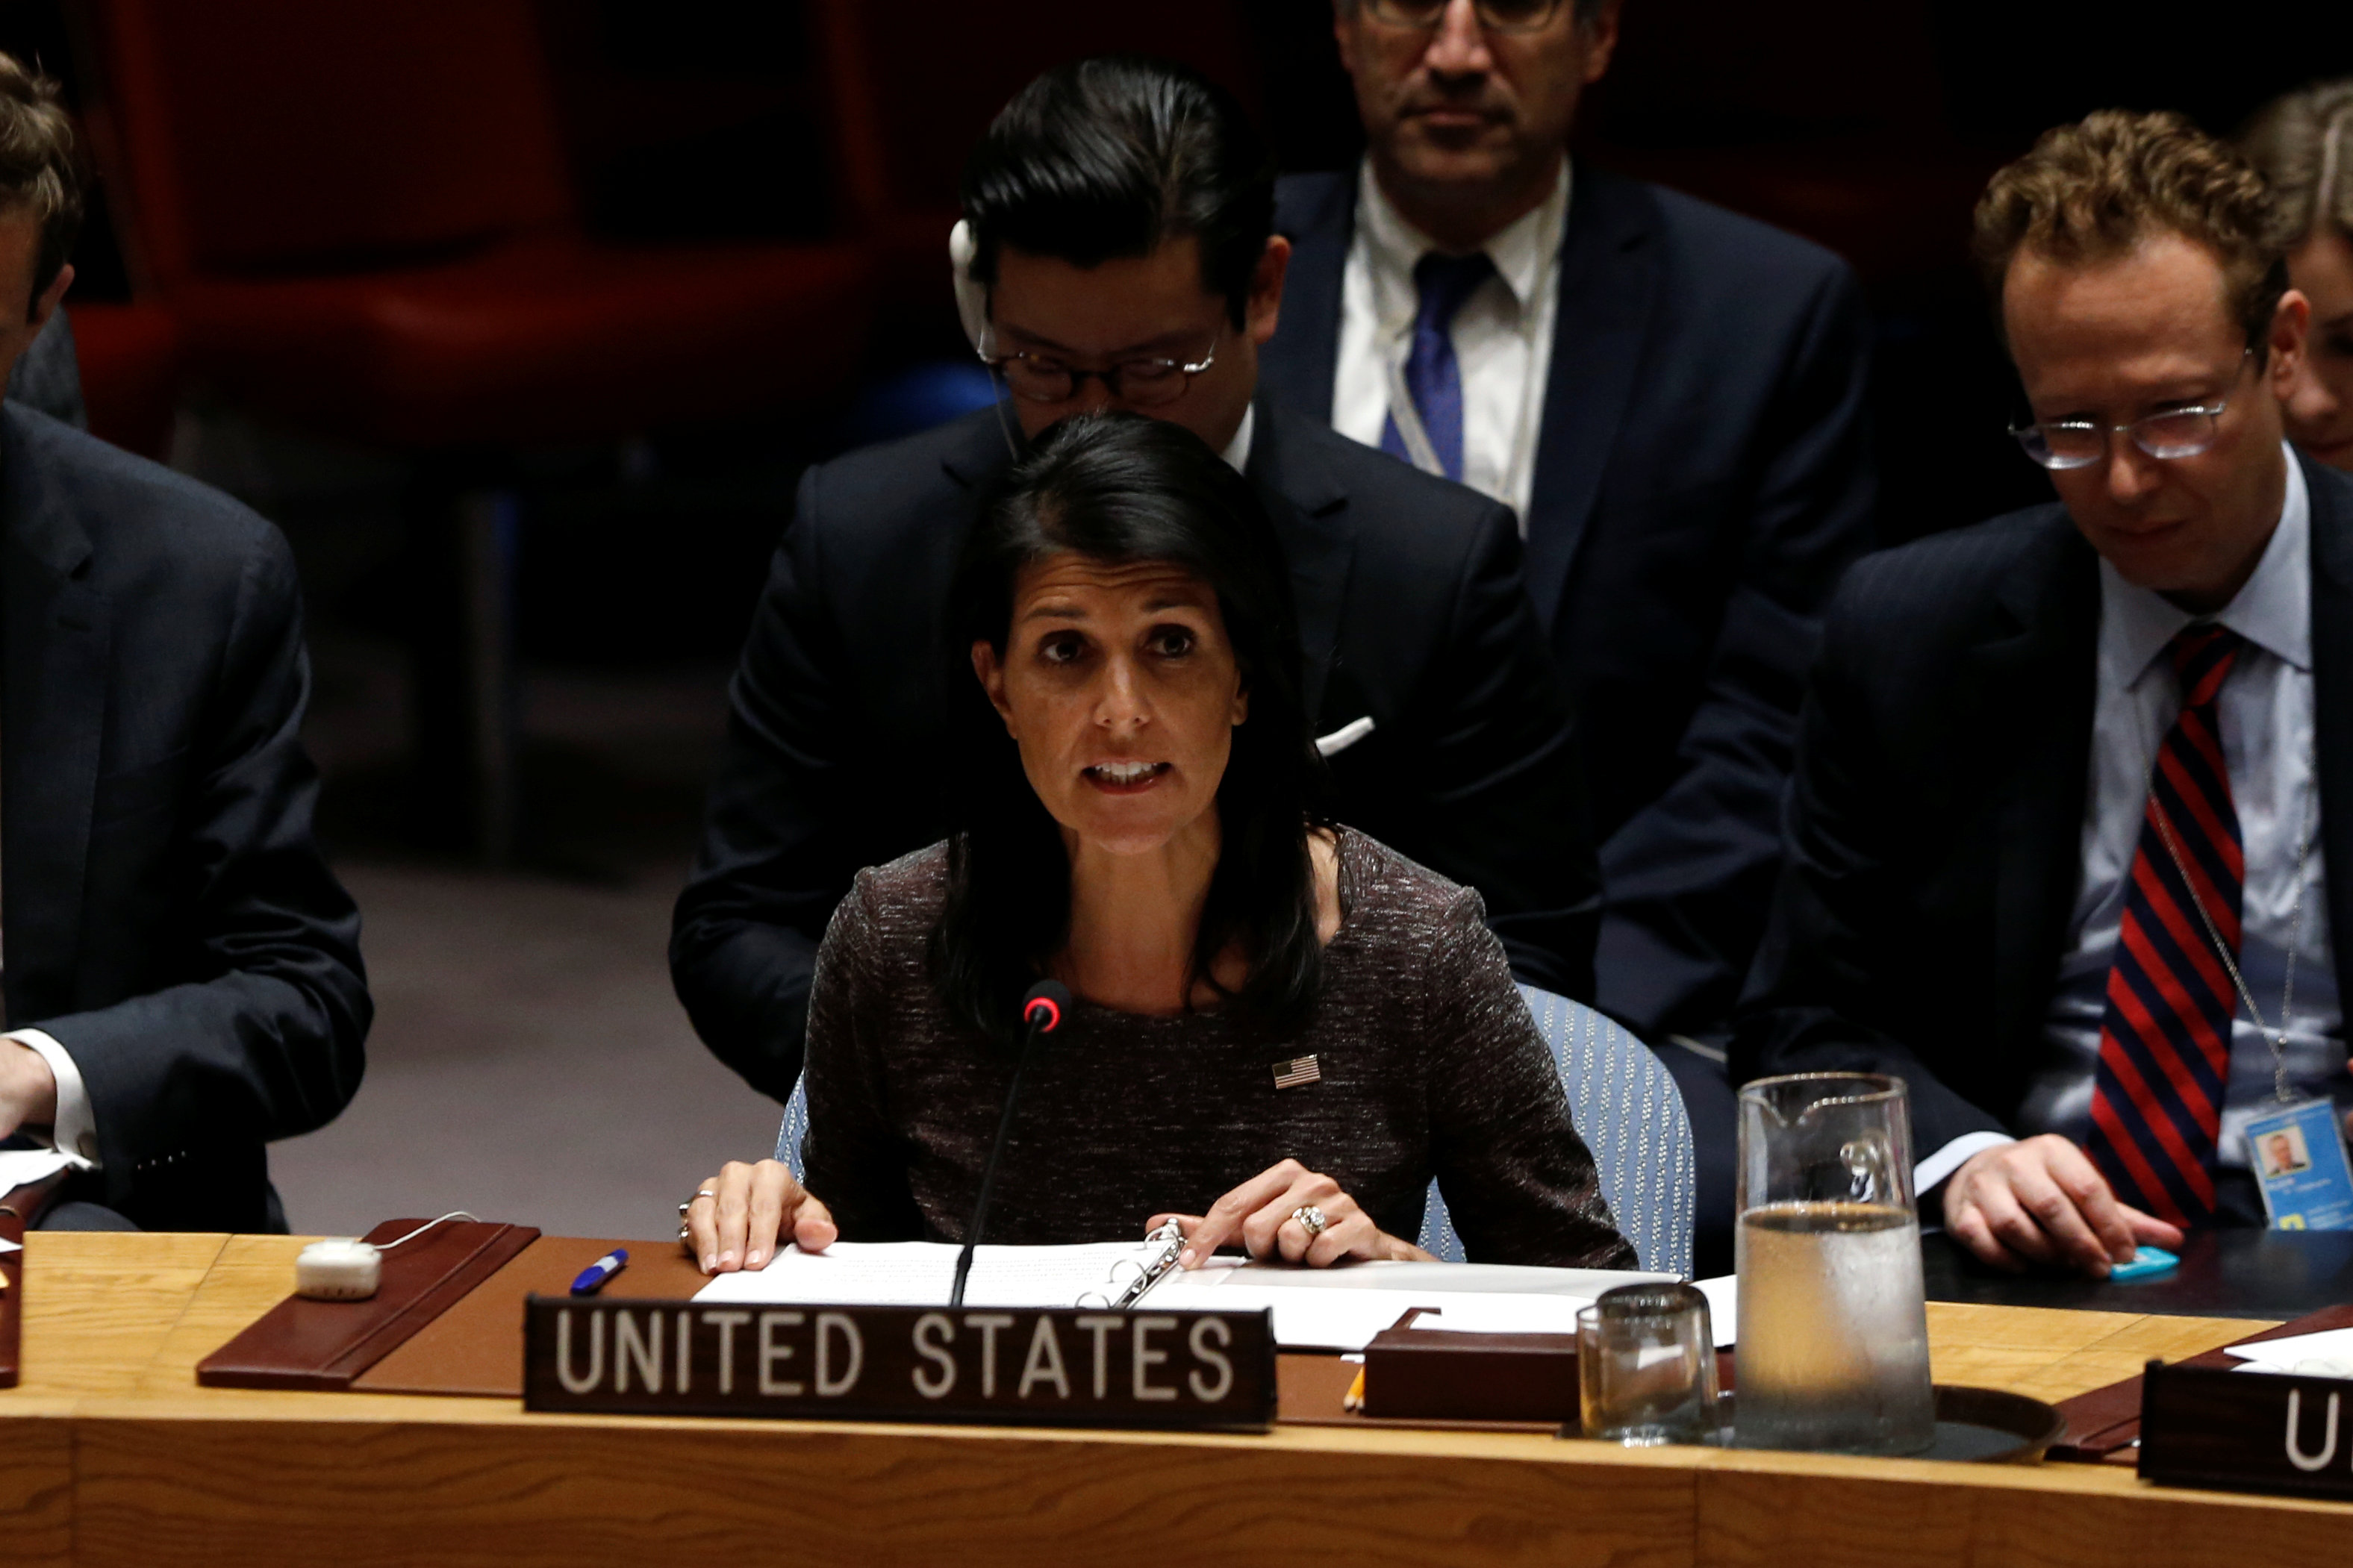 U.S. could withdraw from United Nations Human Rights Council